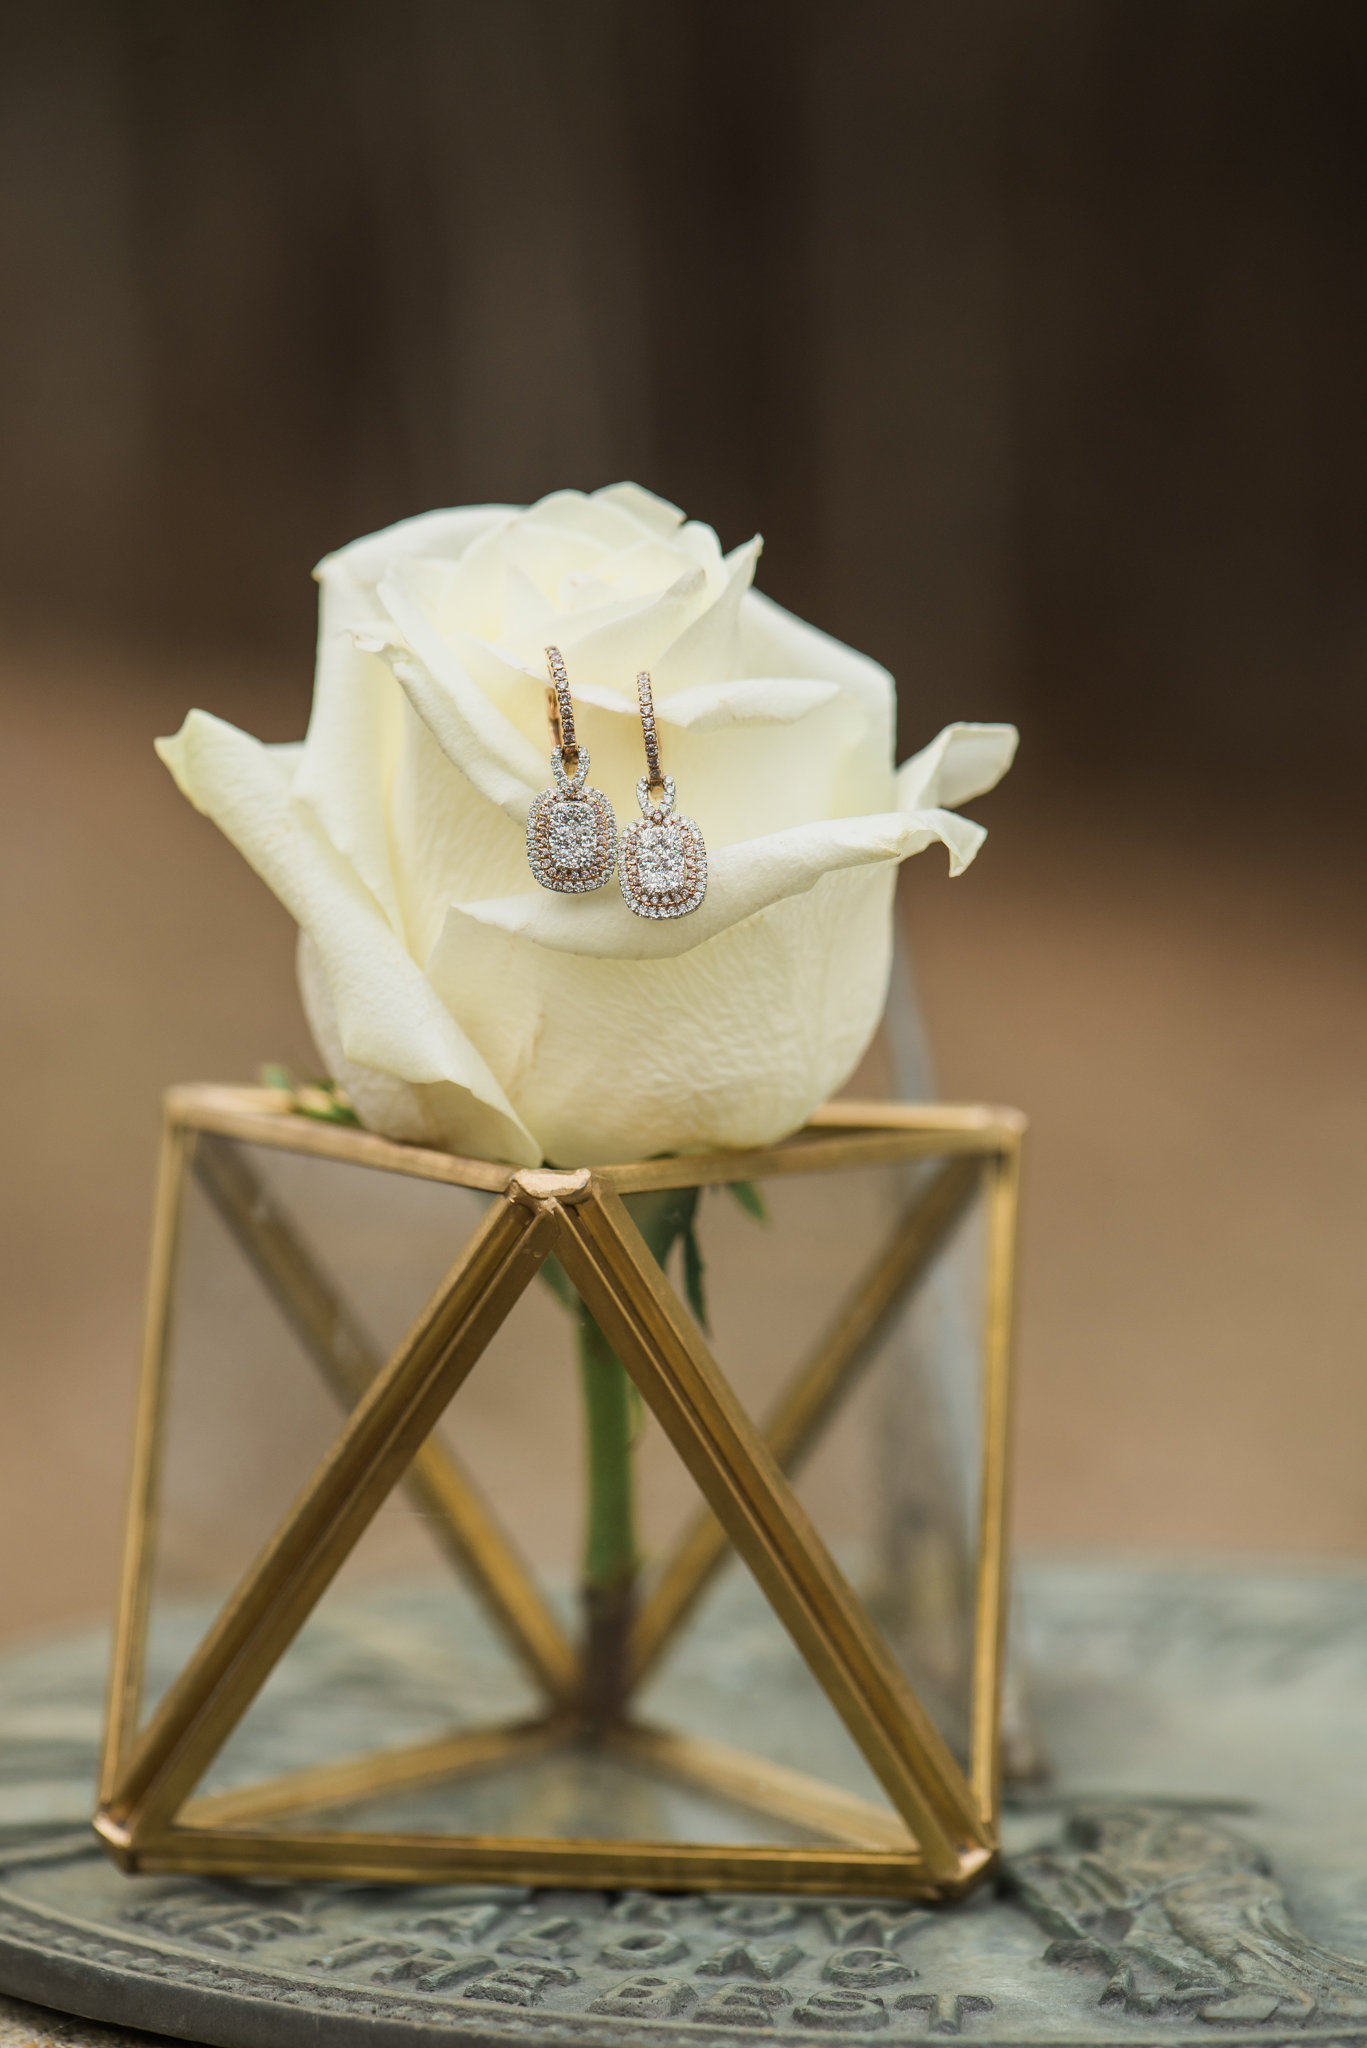 Handley Breaux Designs Styled Photo Shoot | Bromberg's Jewelry | August Willows